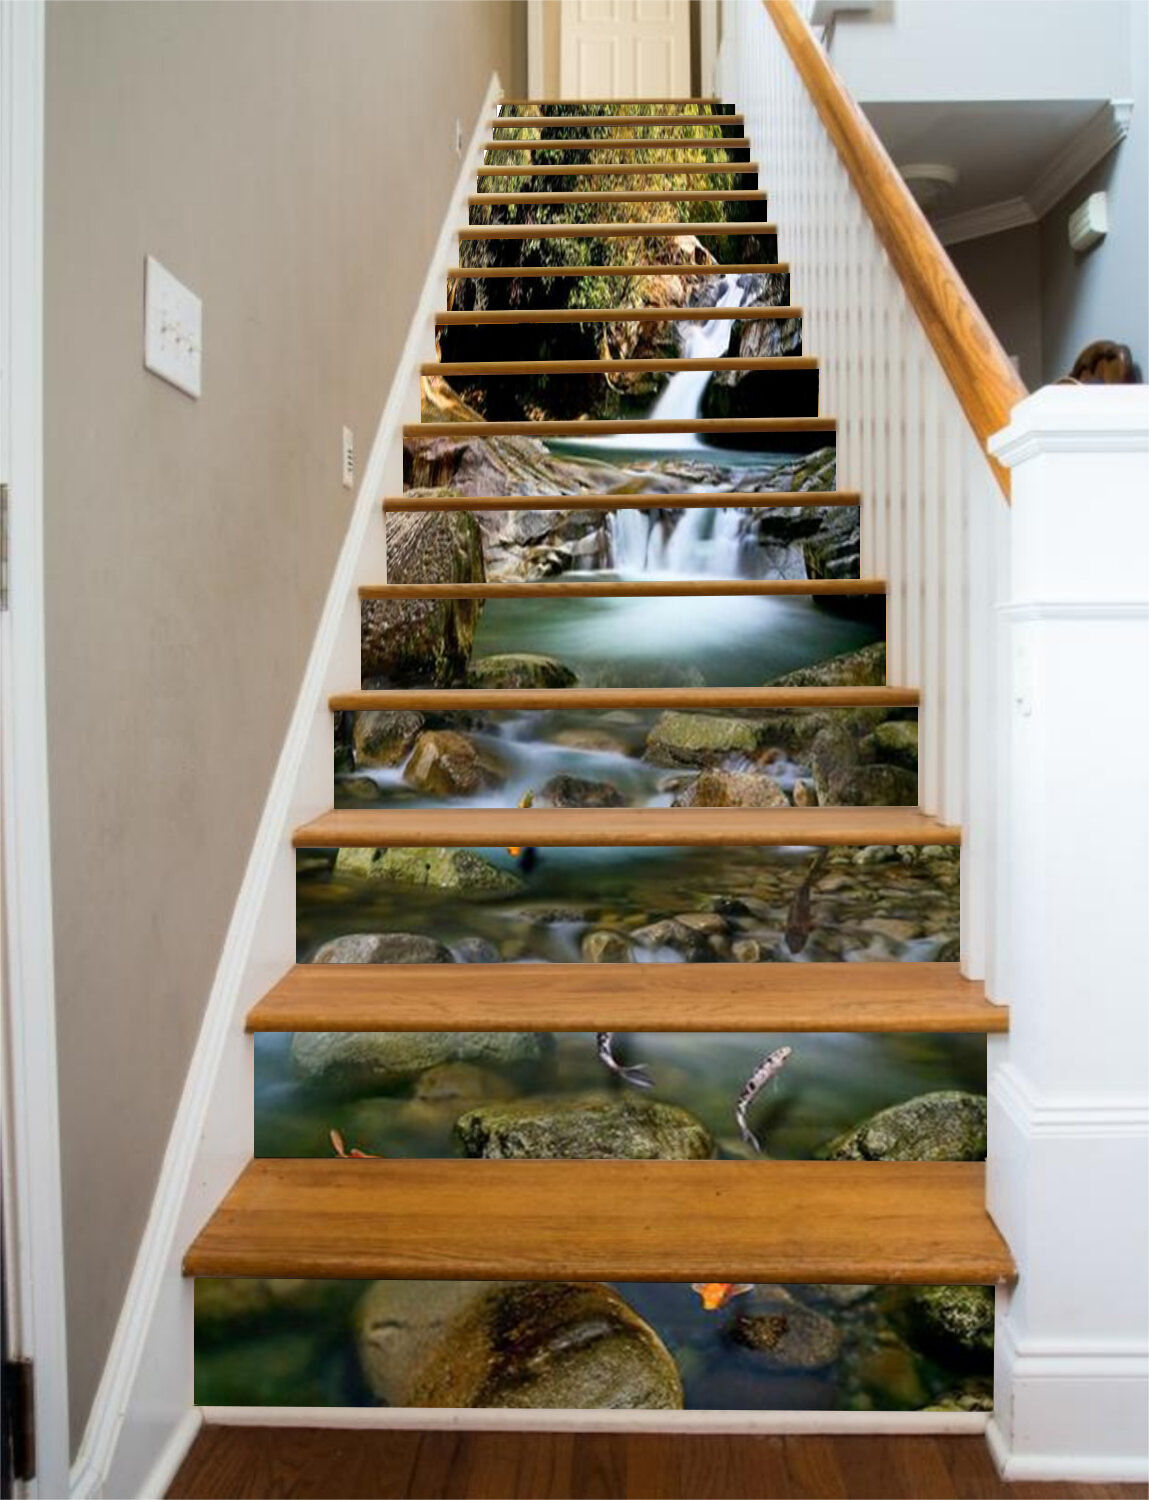 3D River Fishes 061 Stair Risers Decoration Photo Mural Vinyl Decal Wallpaper UK